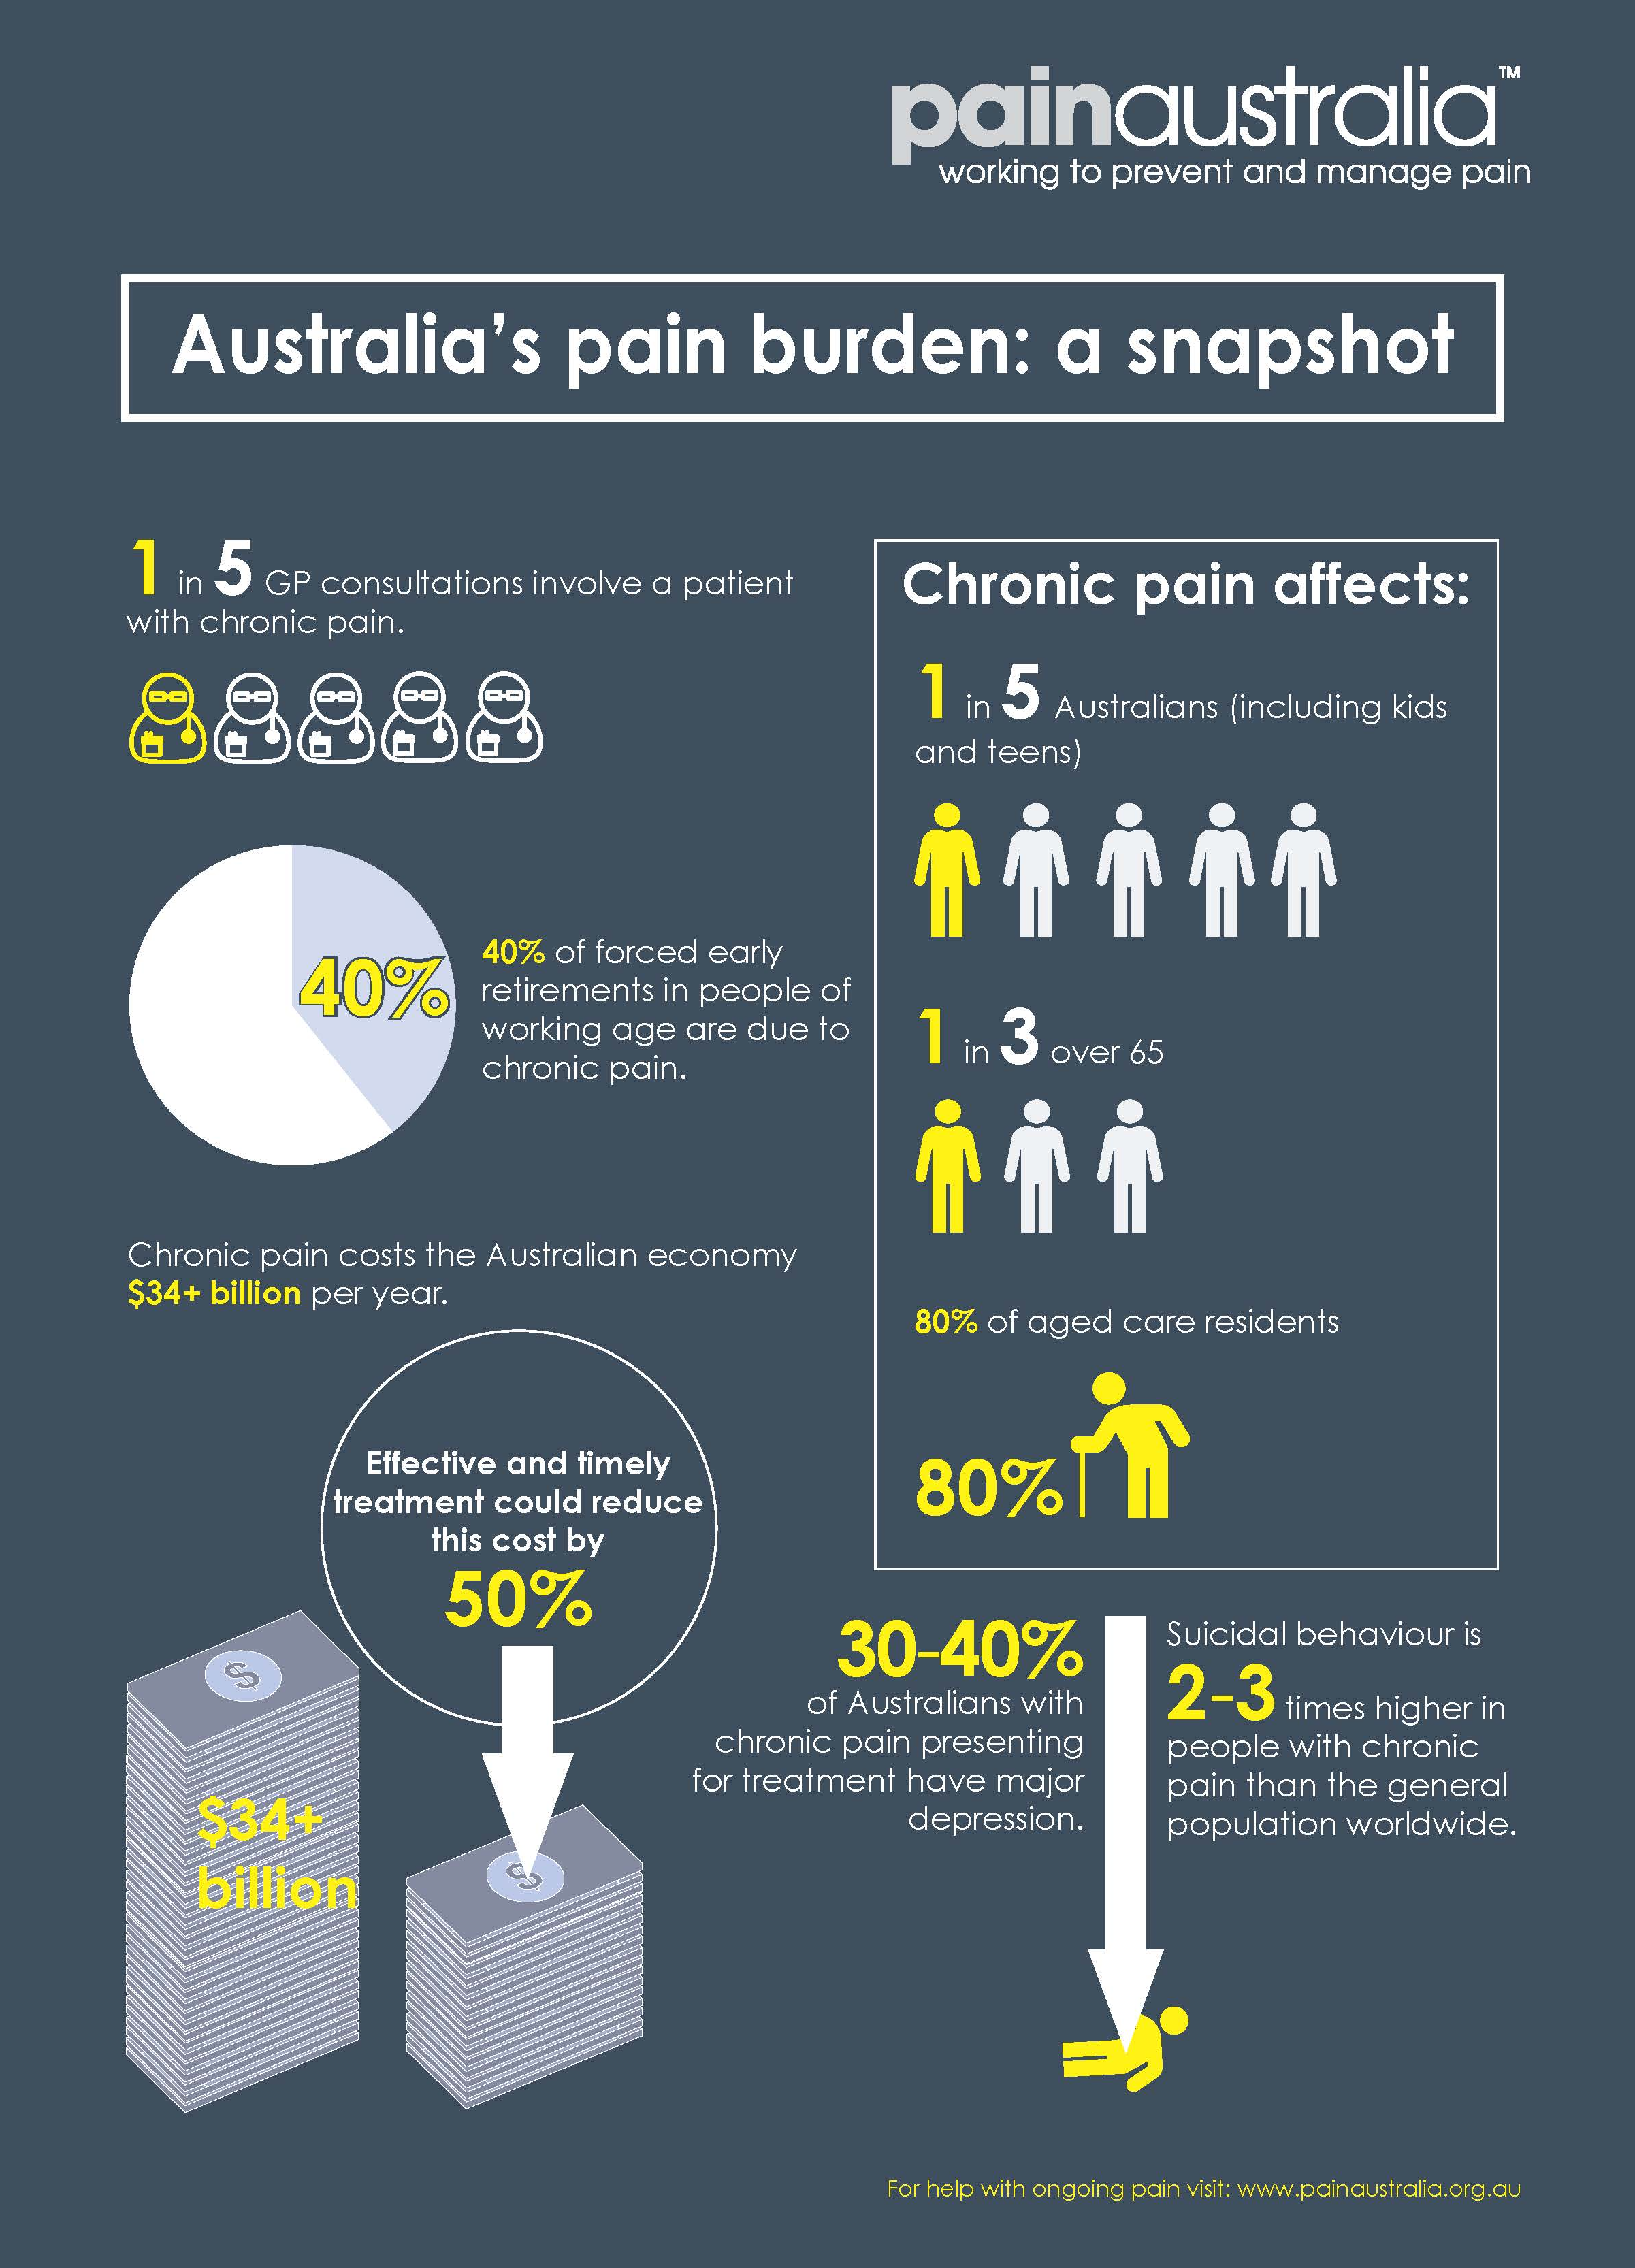 Australia's burden of pain